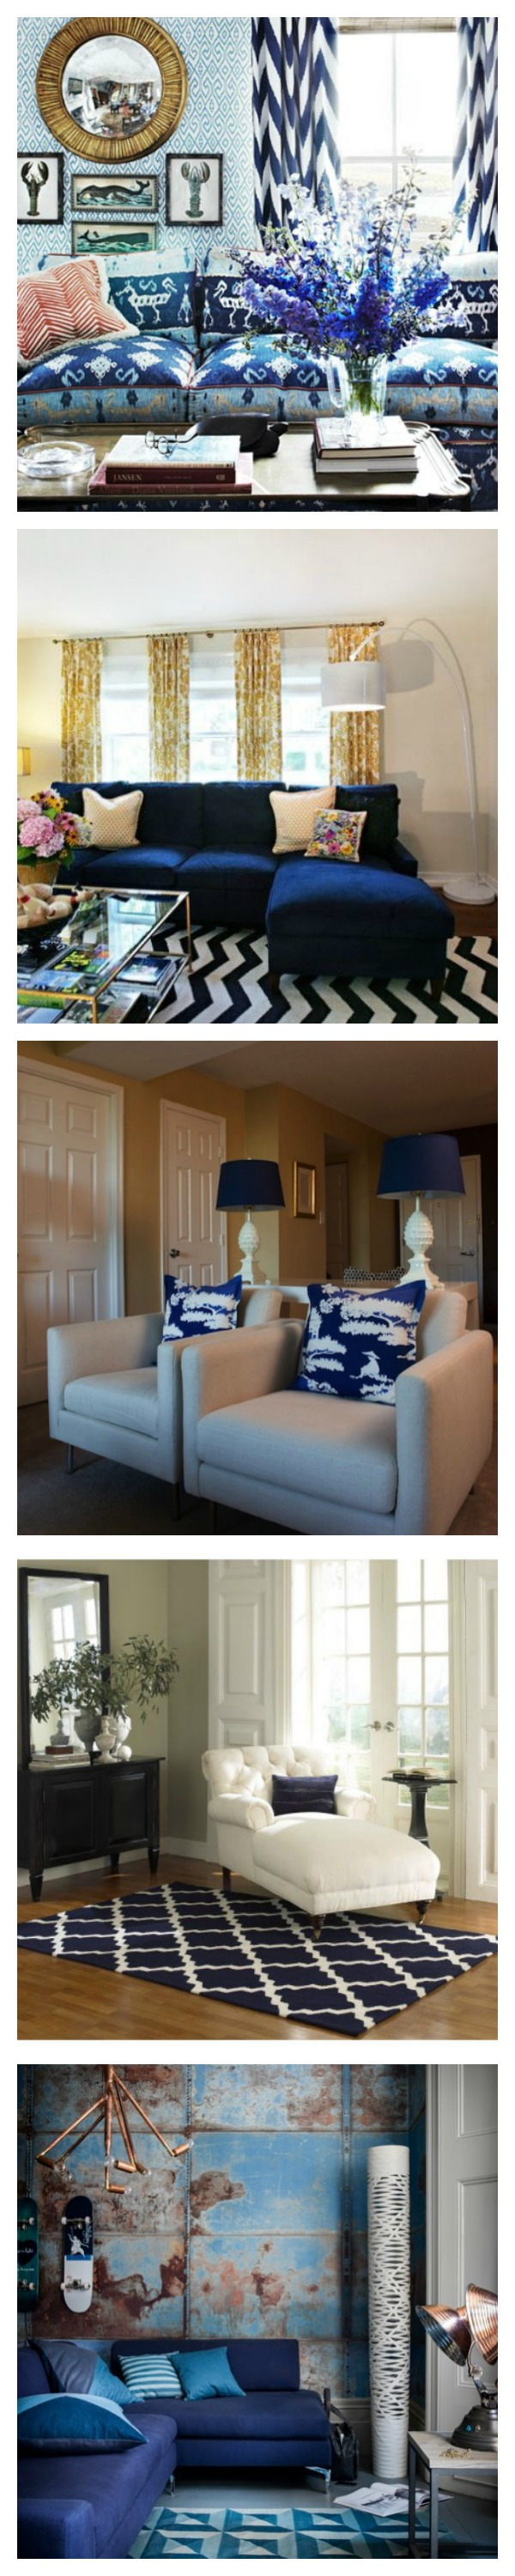 royal/cobalt blue living spaces